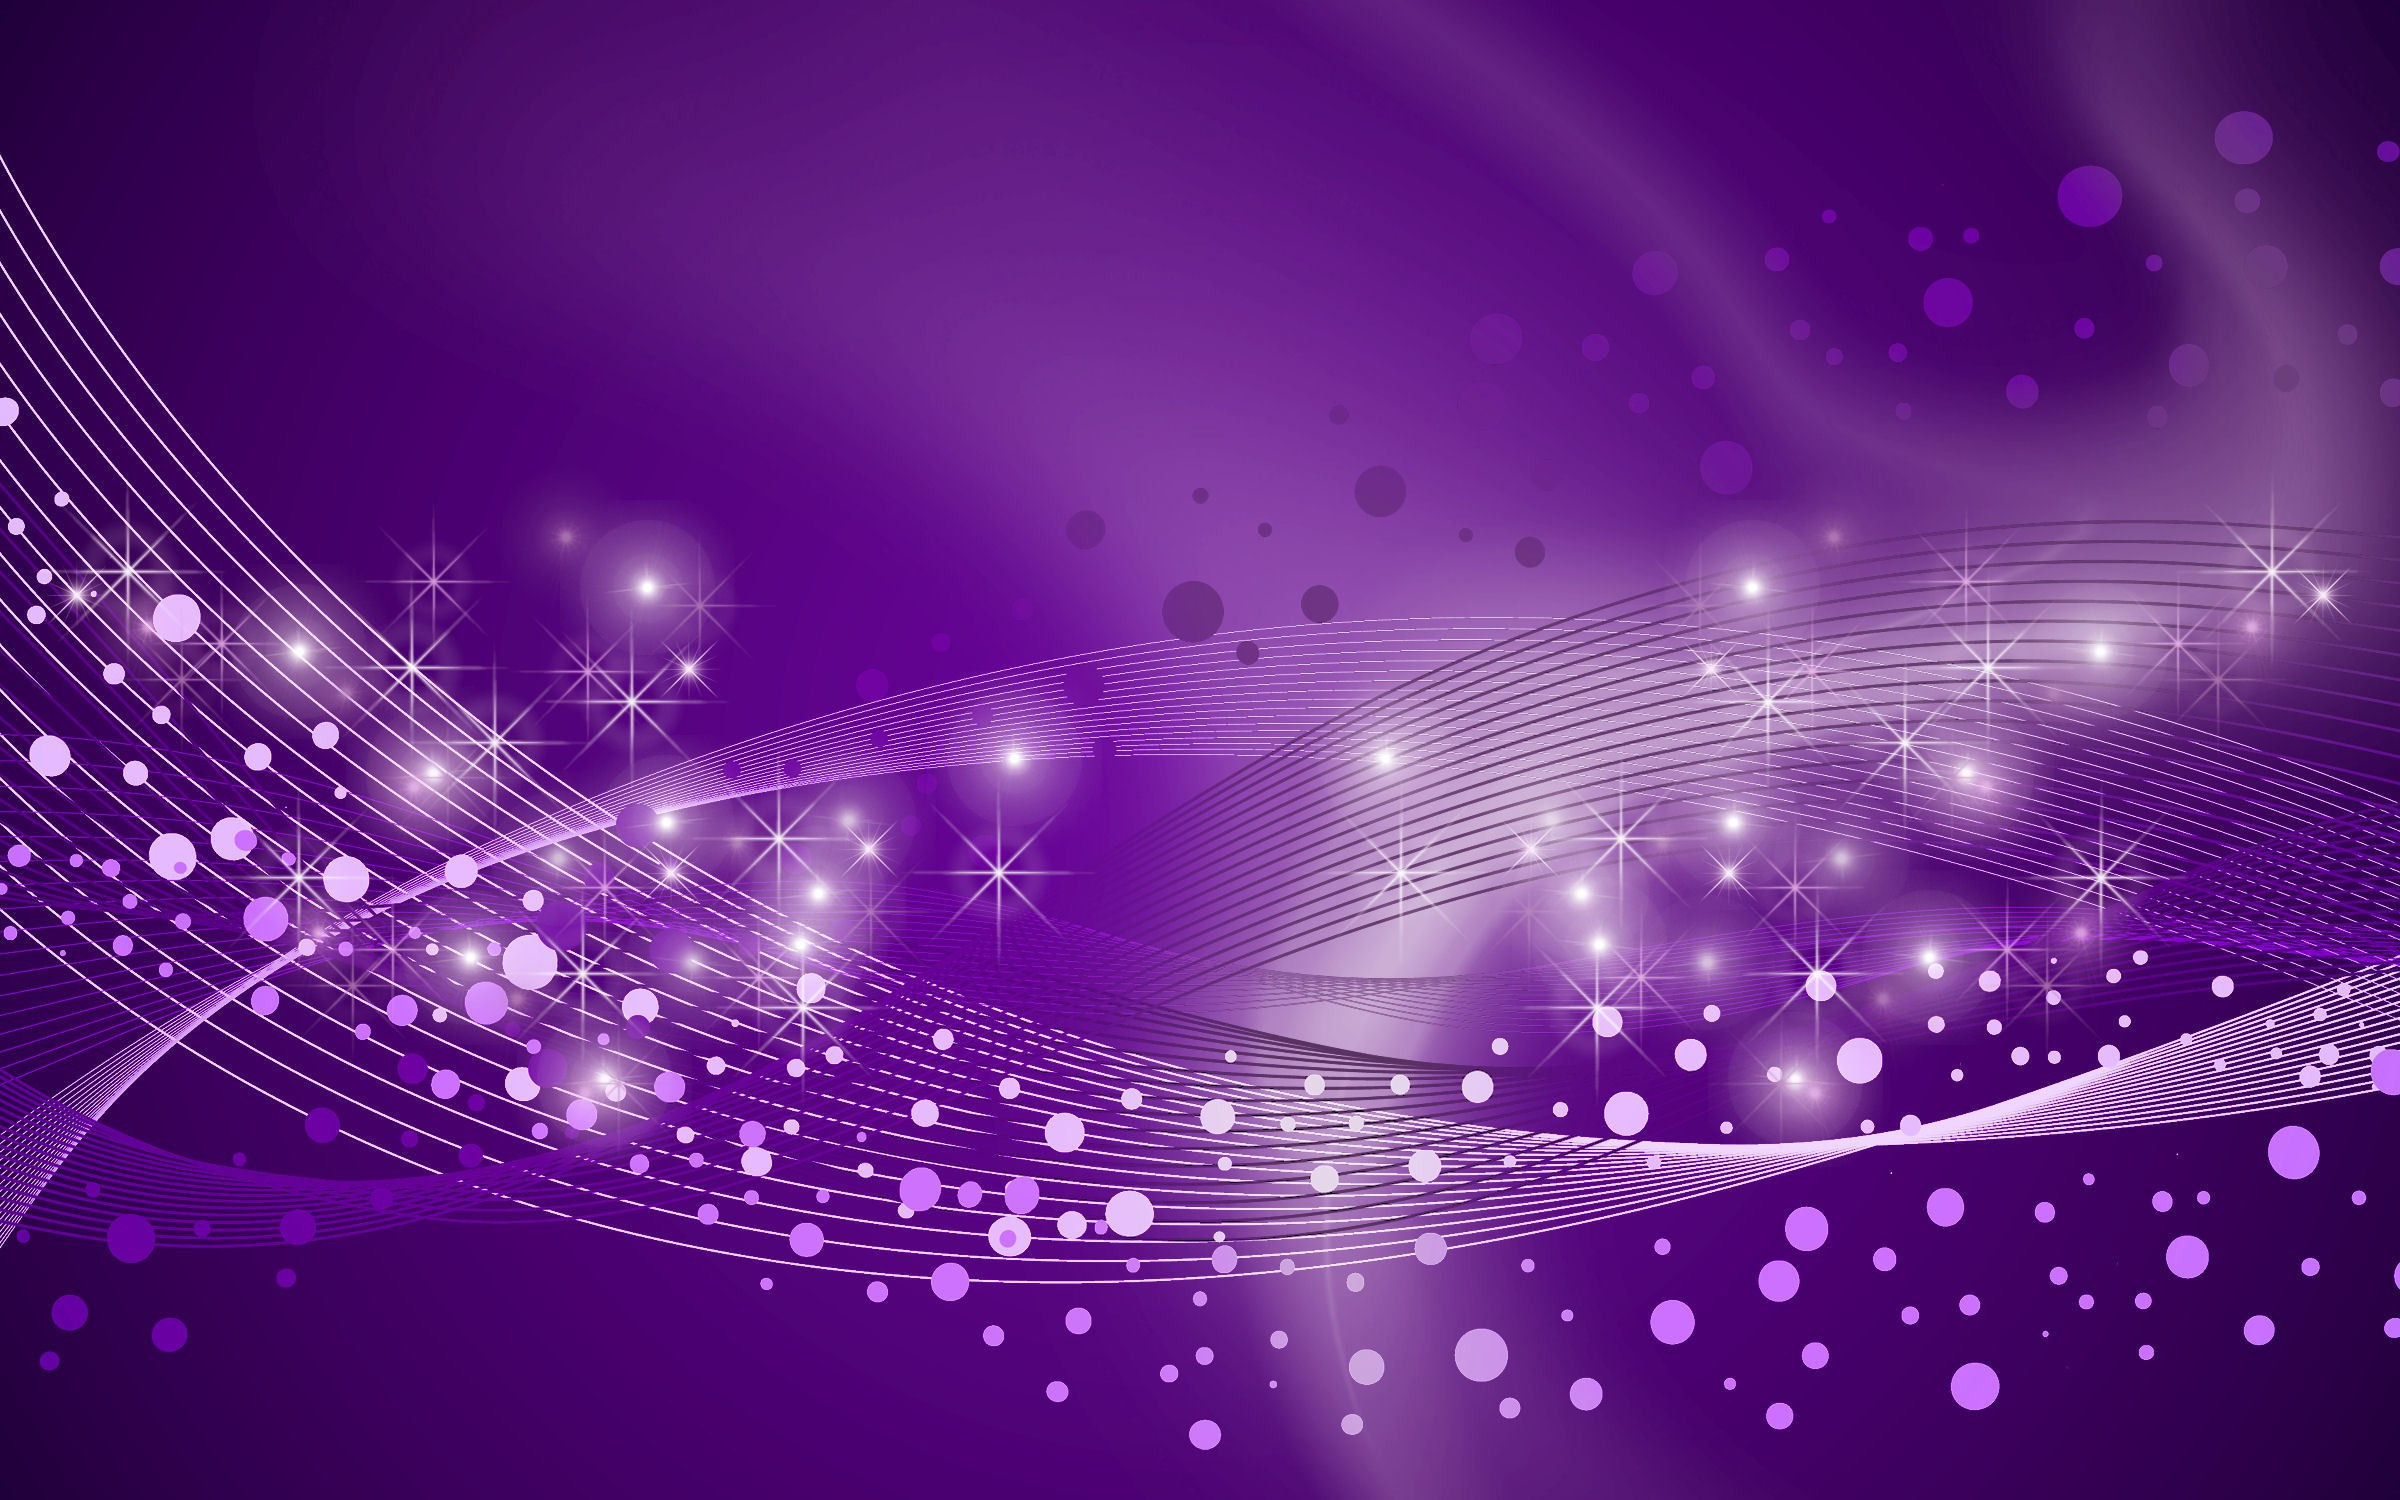 purple abstract background 1080P wallpaper